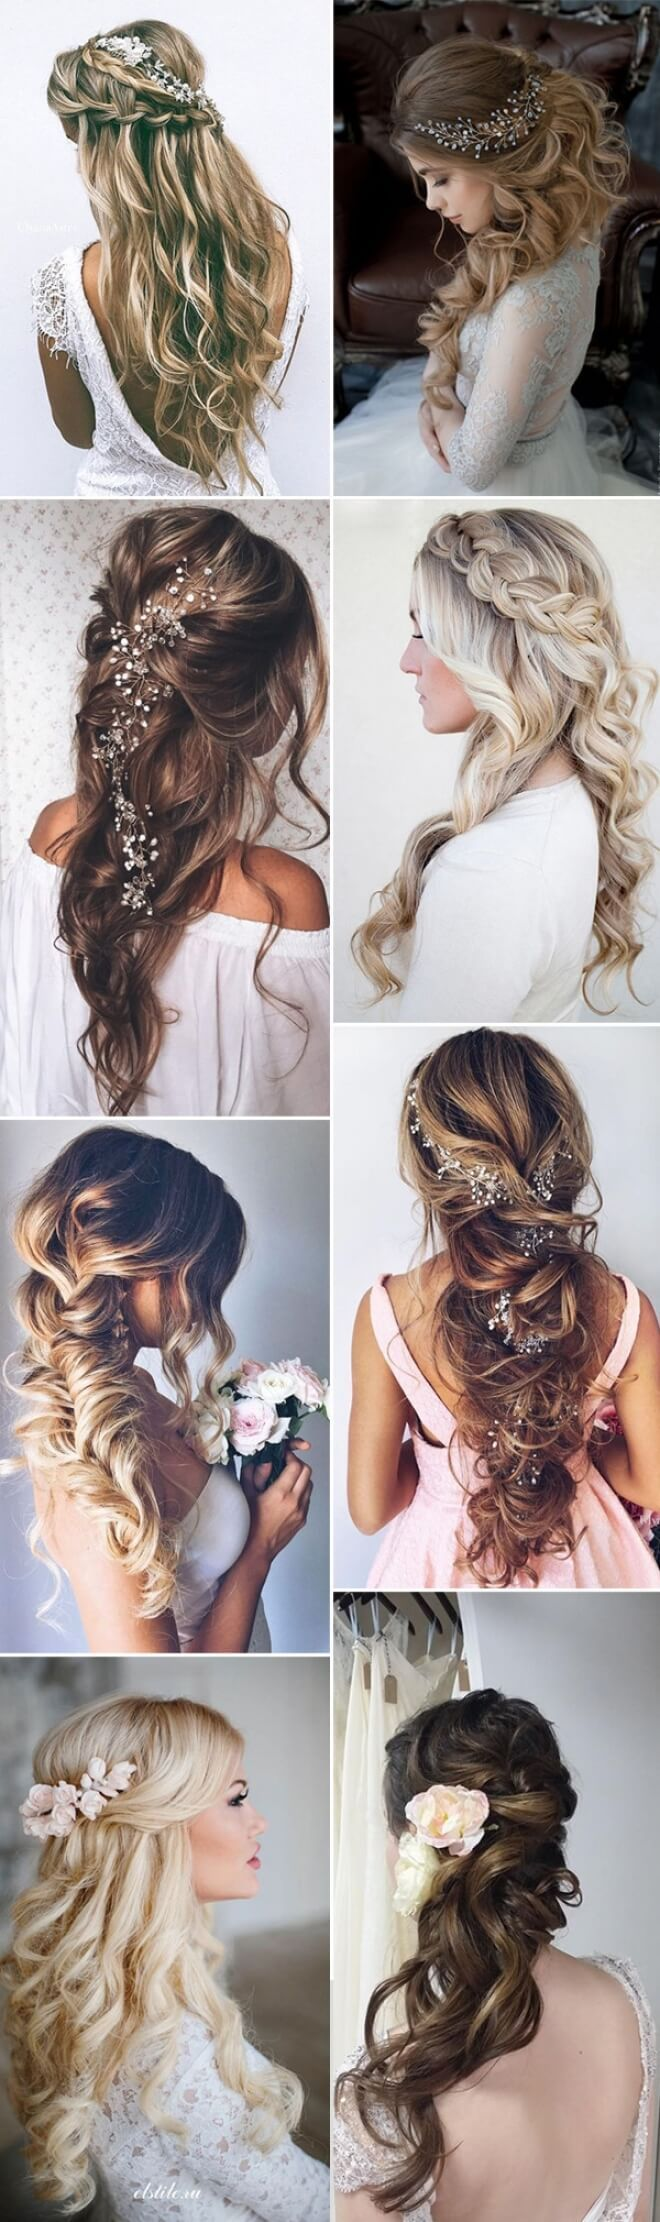 20 amazing half up half down wedding hairstyle ideas oh best day pertaining to long half up wedding hairstyles by thisbestidea